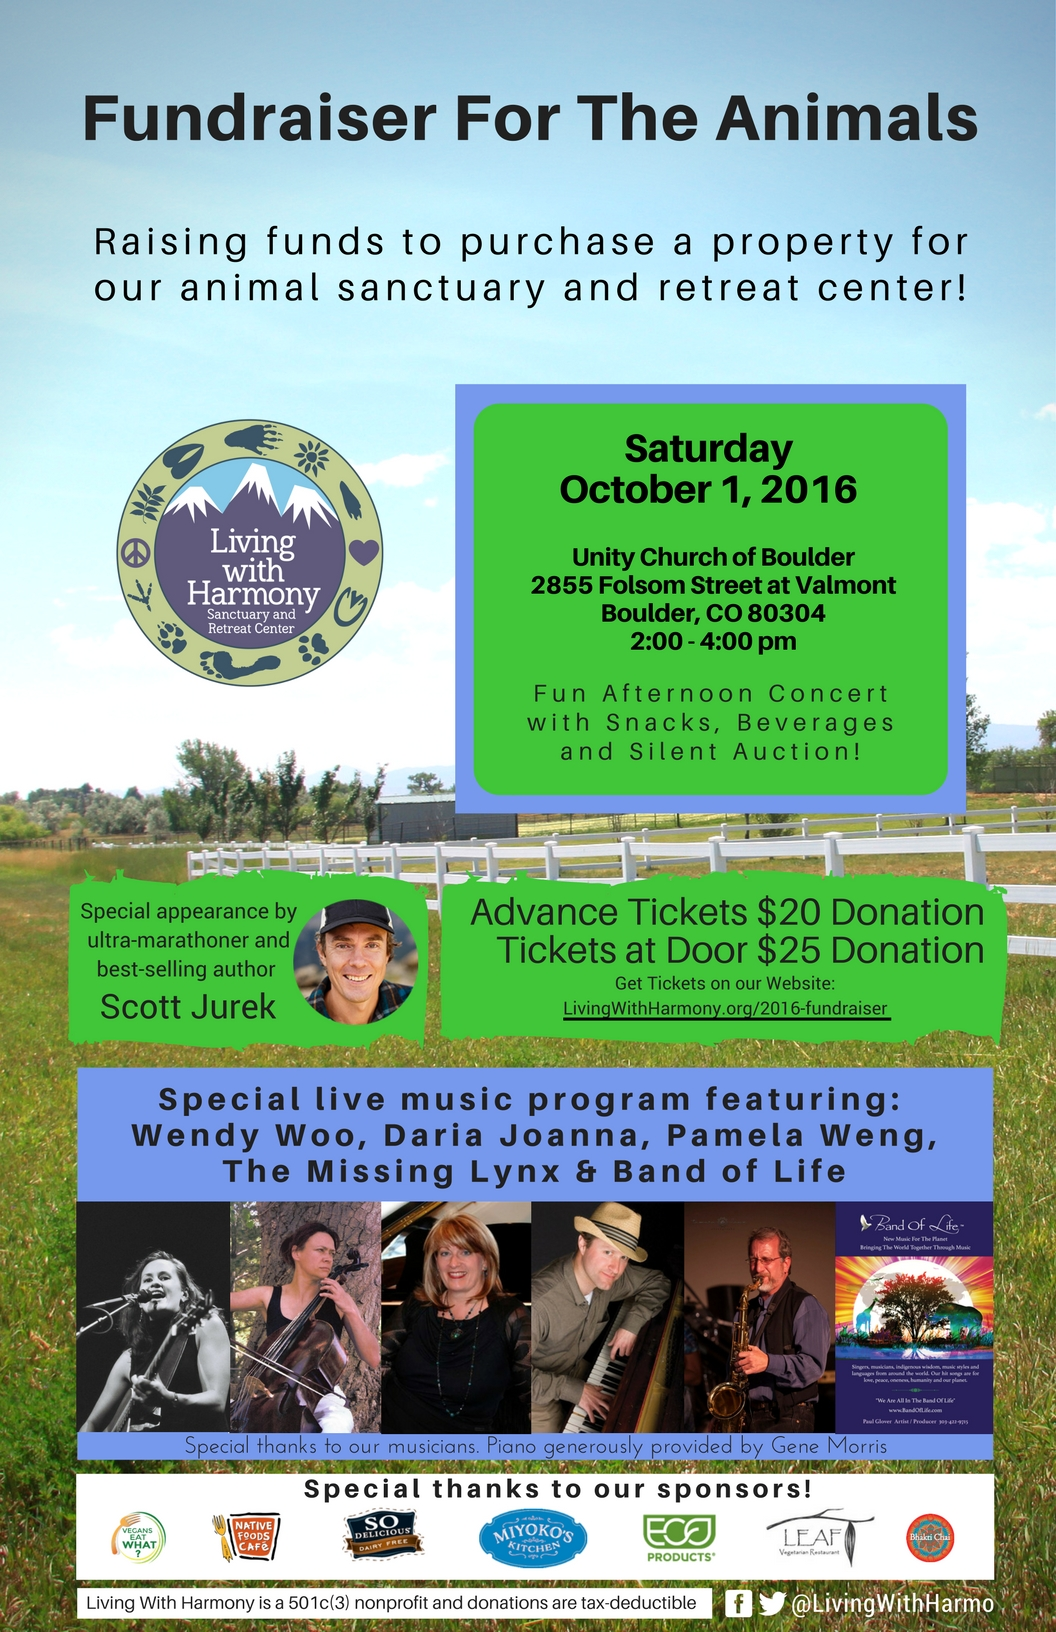 living-with-harmony-2016-fundraiser-poster-sponsors-11x17-3-5